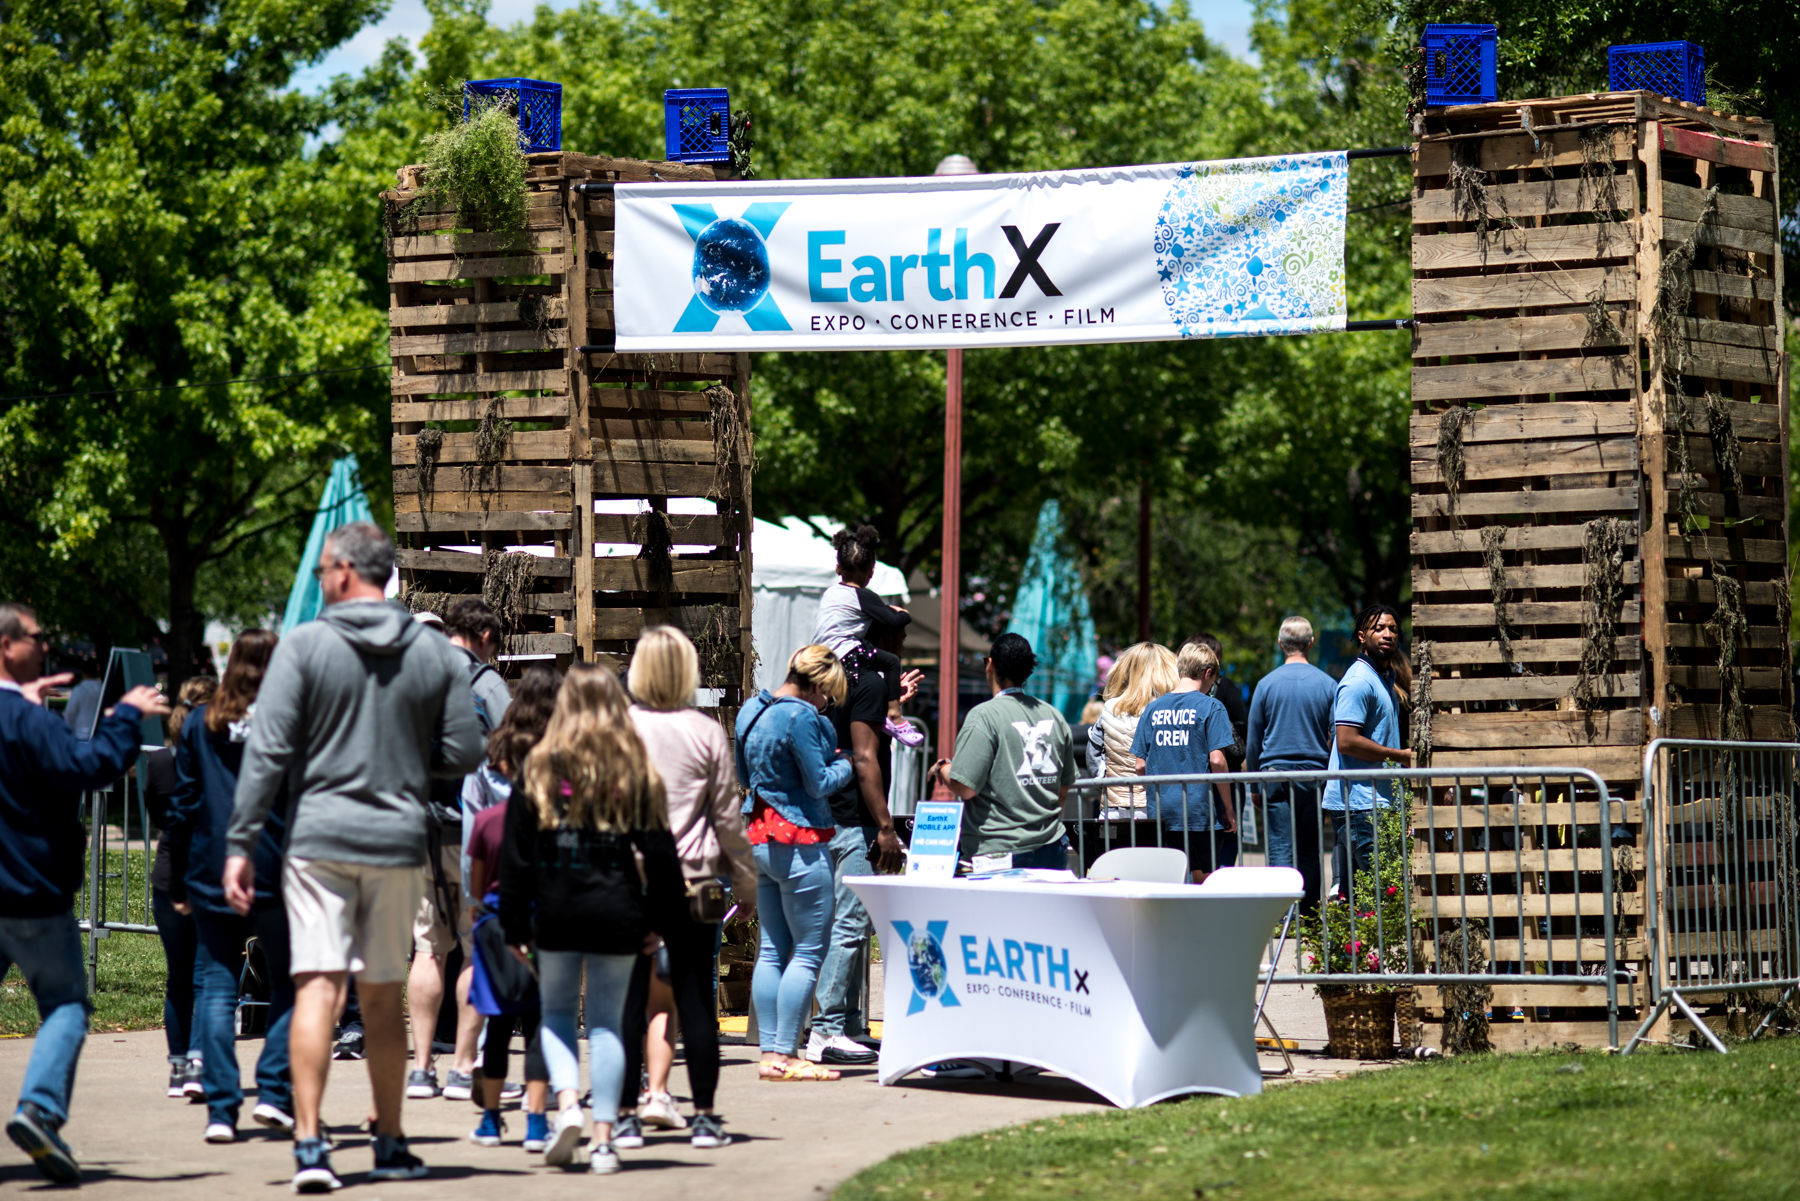 Weekday Round-Up: Earth Day, Free Music, and New Films - D Magazine